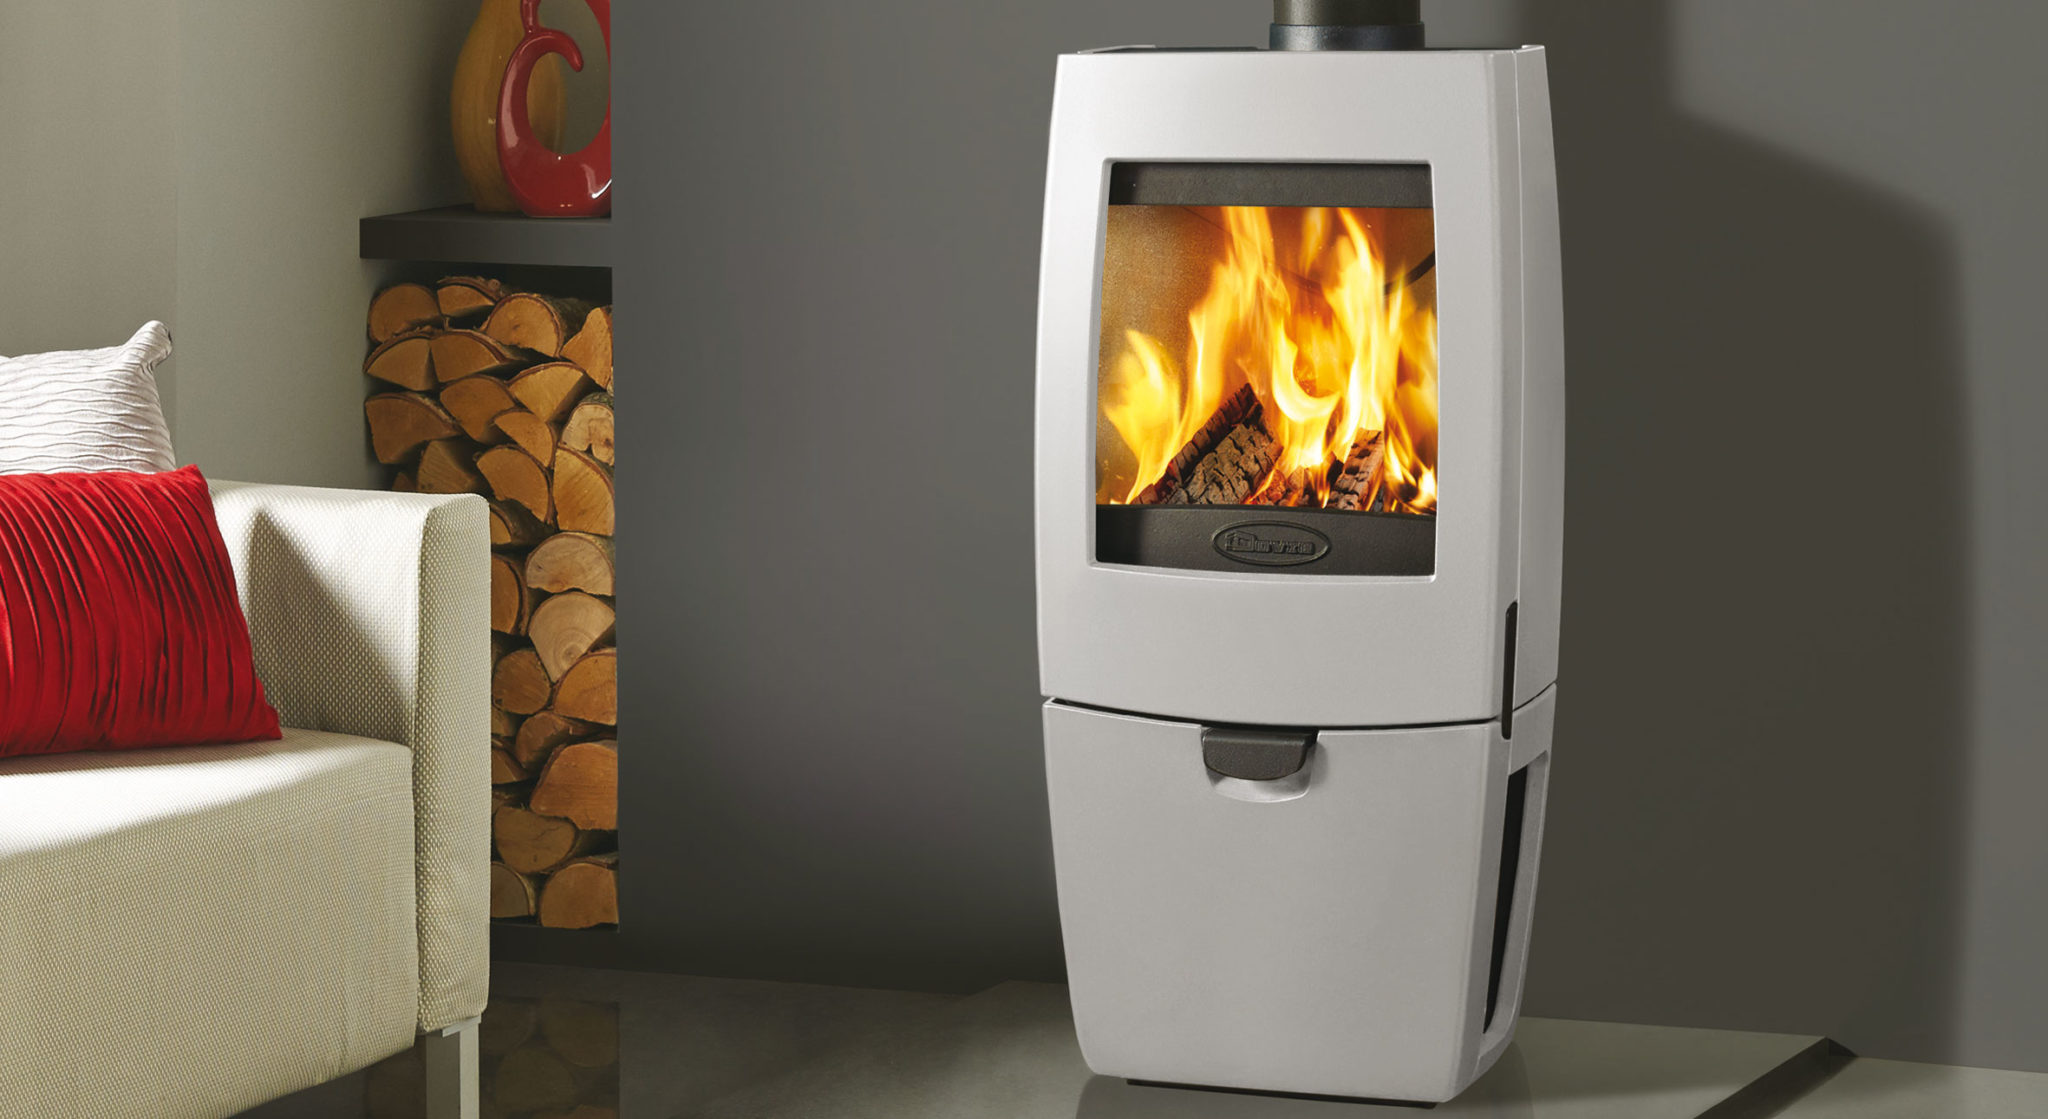 Dovre Cast Iron Stoves and Fires – Combining Function and Aesthetics